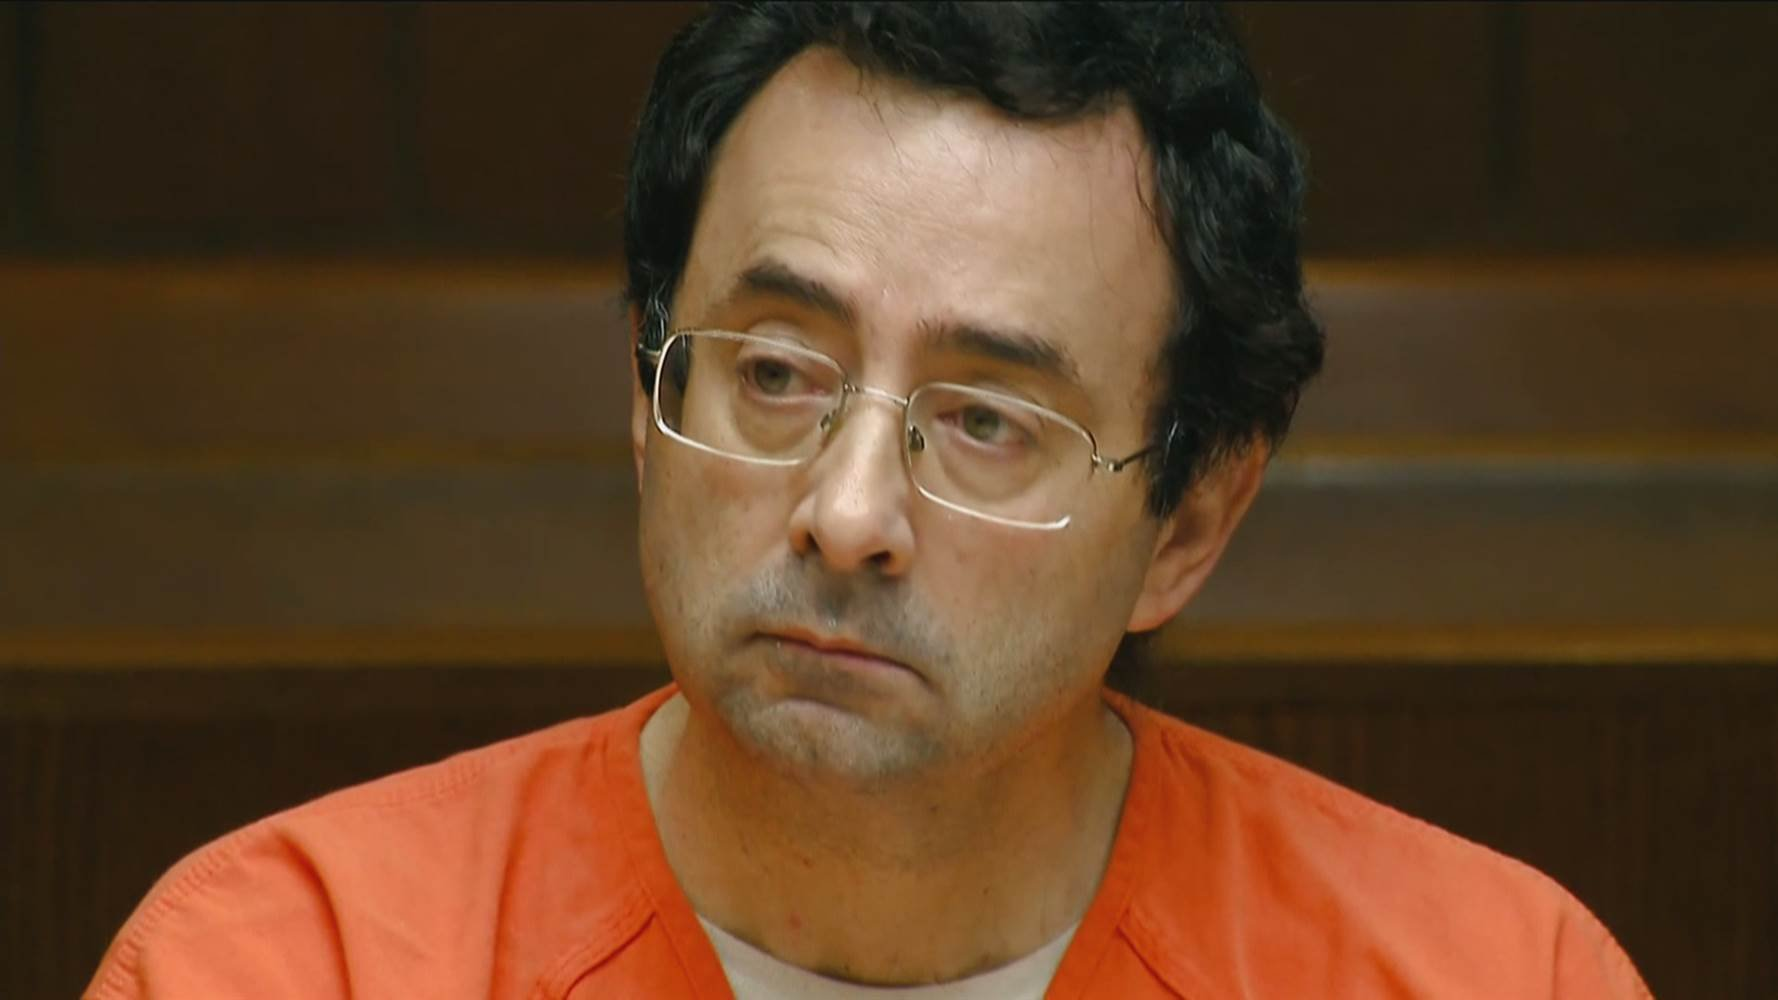 Disgraced US Gymnastics doctor Larry Nassar now in federal custody